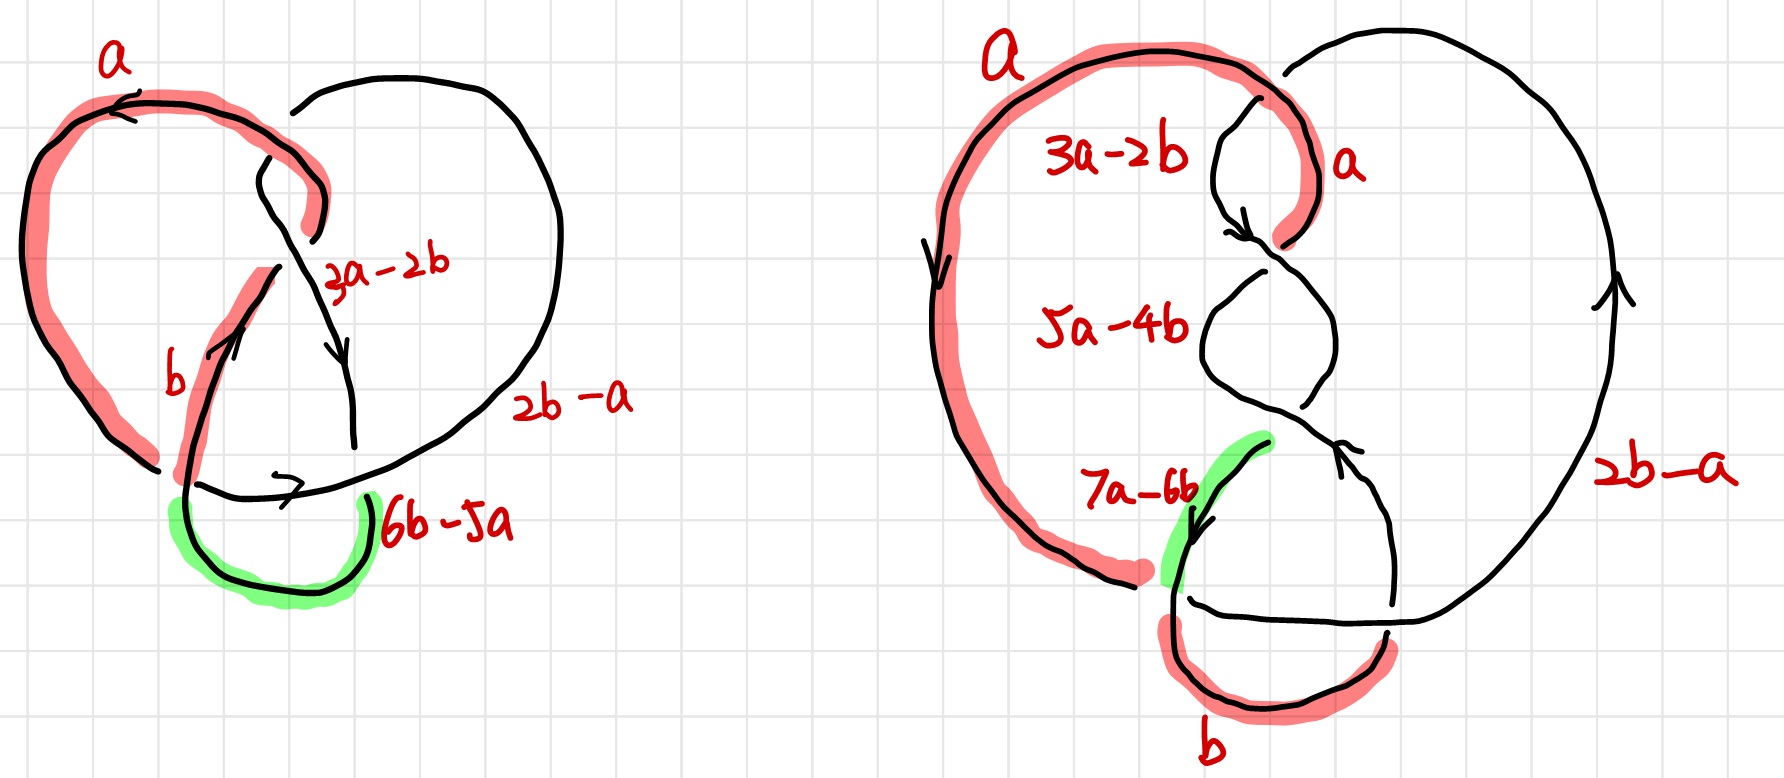 5 and 7 coloring of knots